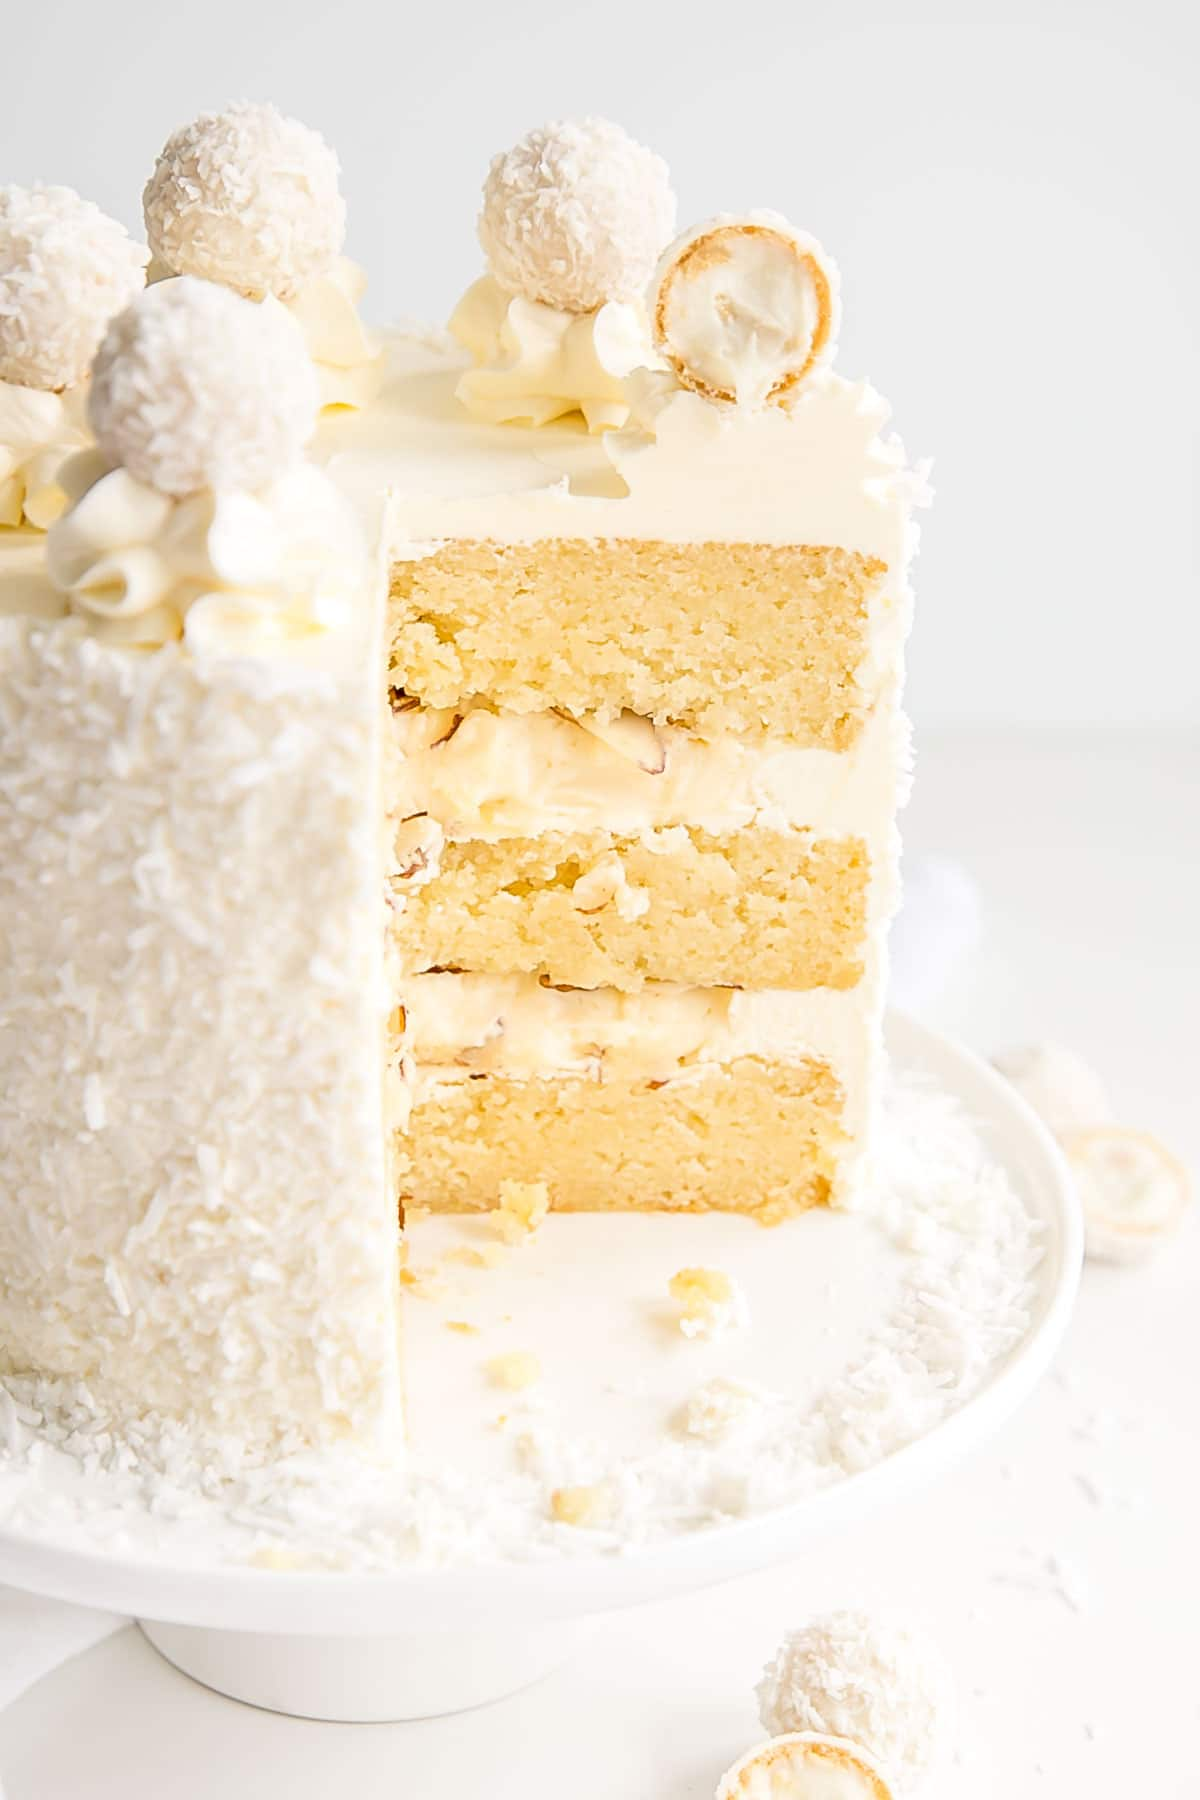 Cross section of a Raffaello Cake with almond cake layers and coconut cream custard.